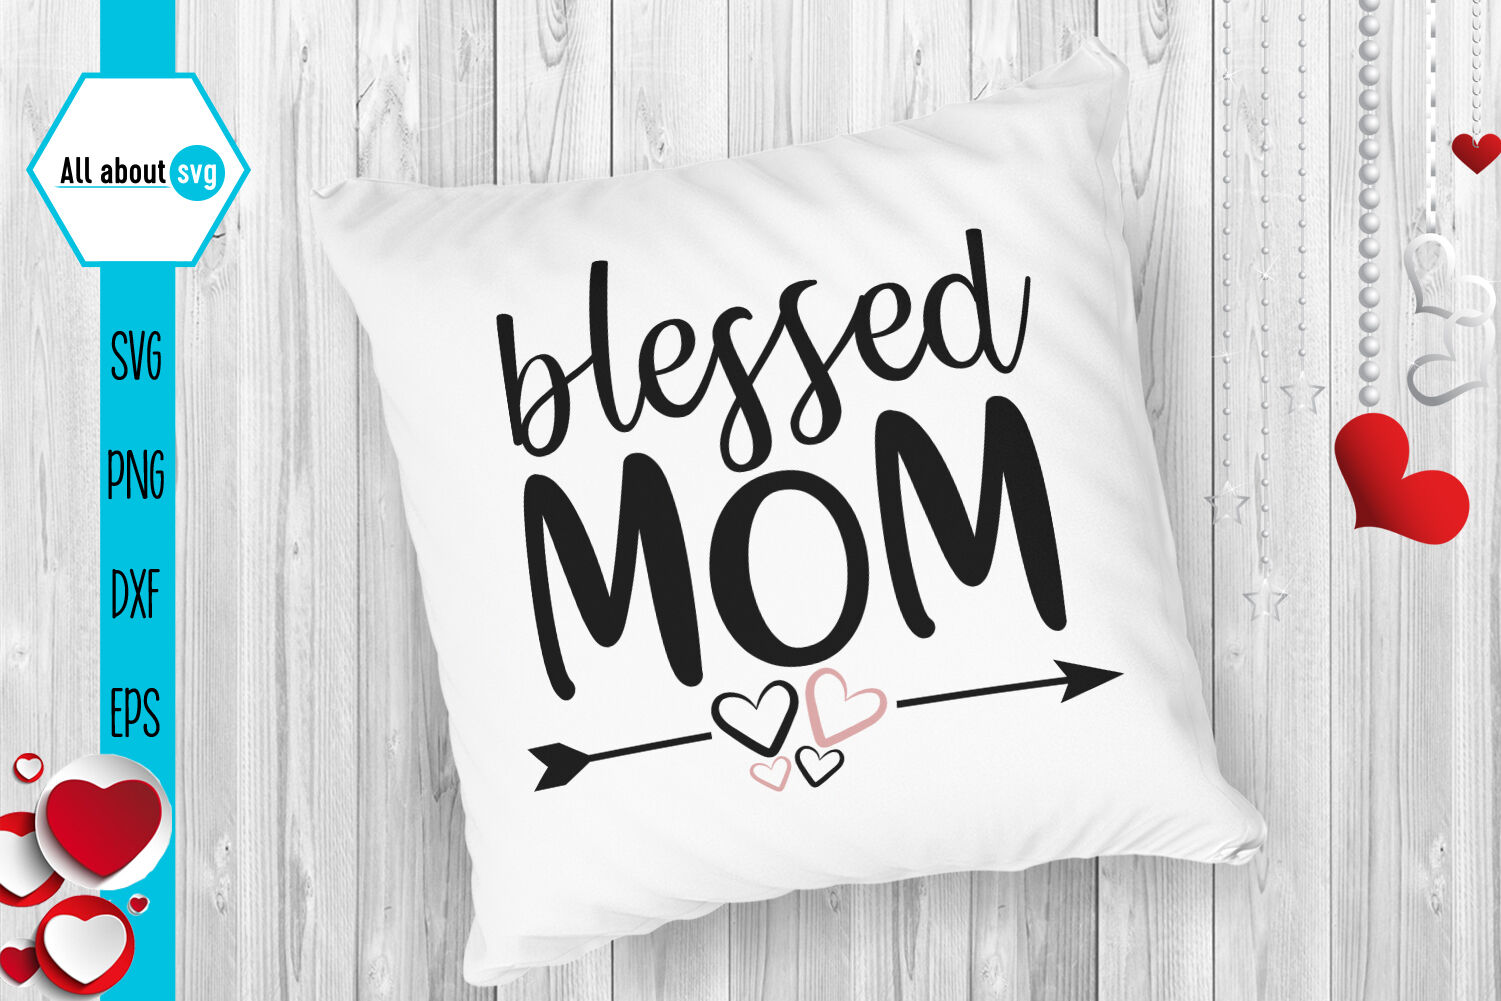 Mom Life Quotes Bundle Svg By All About Svg Thehungryjpeg Com